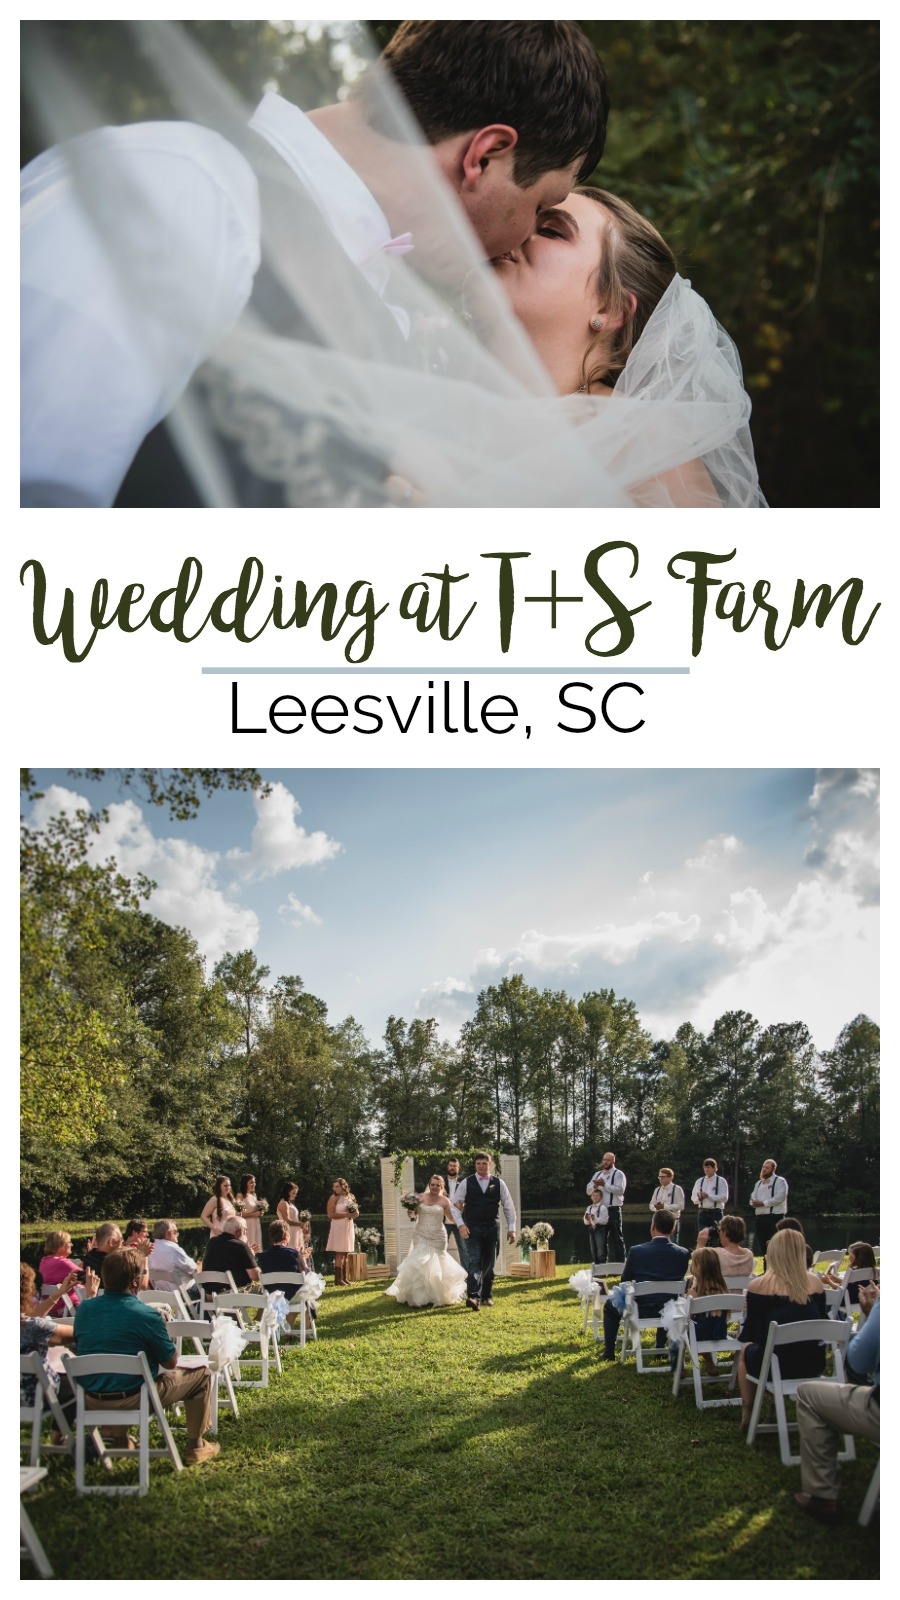 Anna and Dustin: Adorable Firefighter Wedding at T&S Farm, Leesville, South Carolina | Palmetto State Weddings | Northern Red Photography | farm wedding south carolina | southern barn wedding | Columbia SC wedding